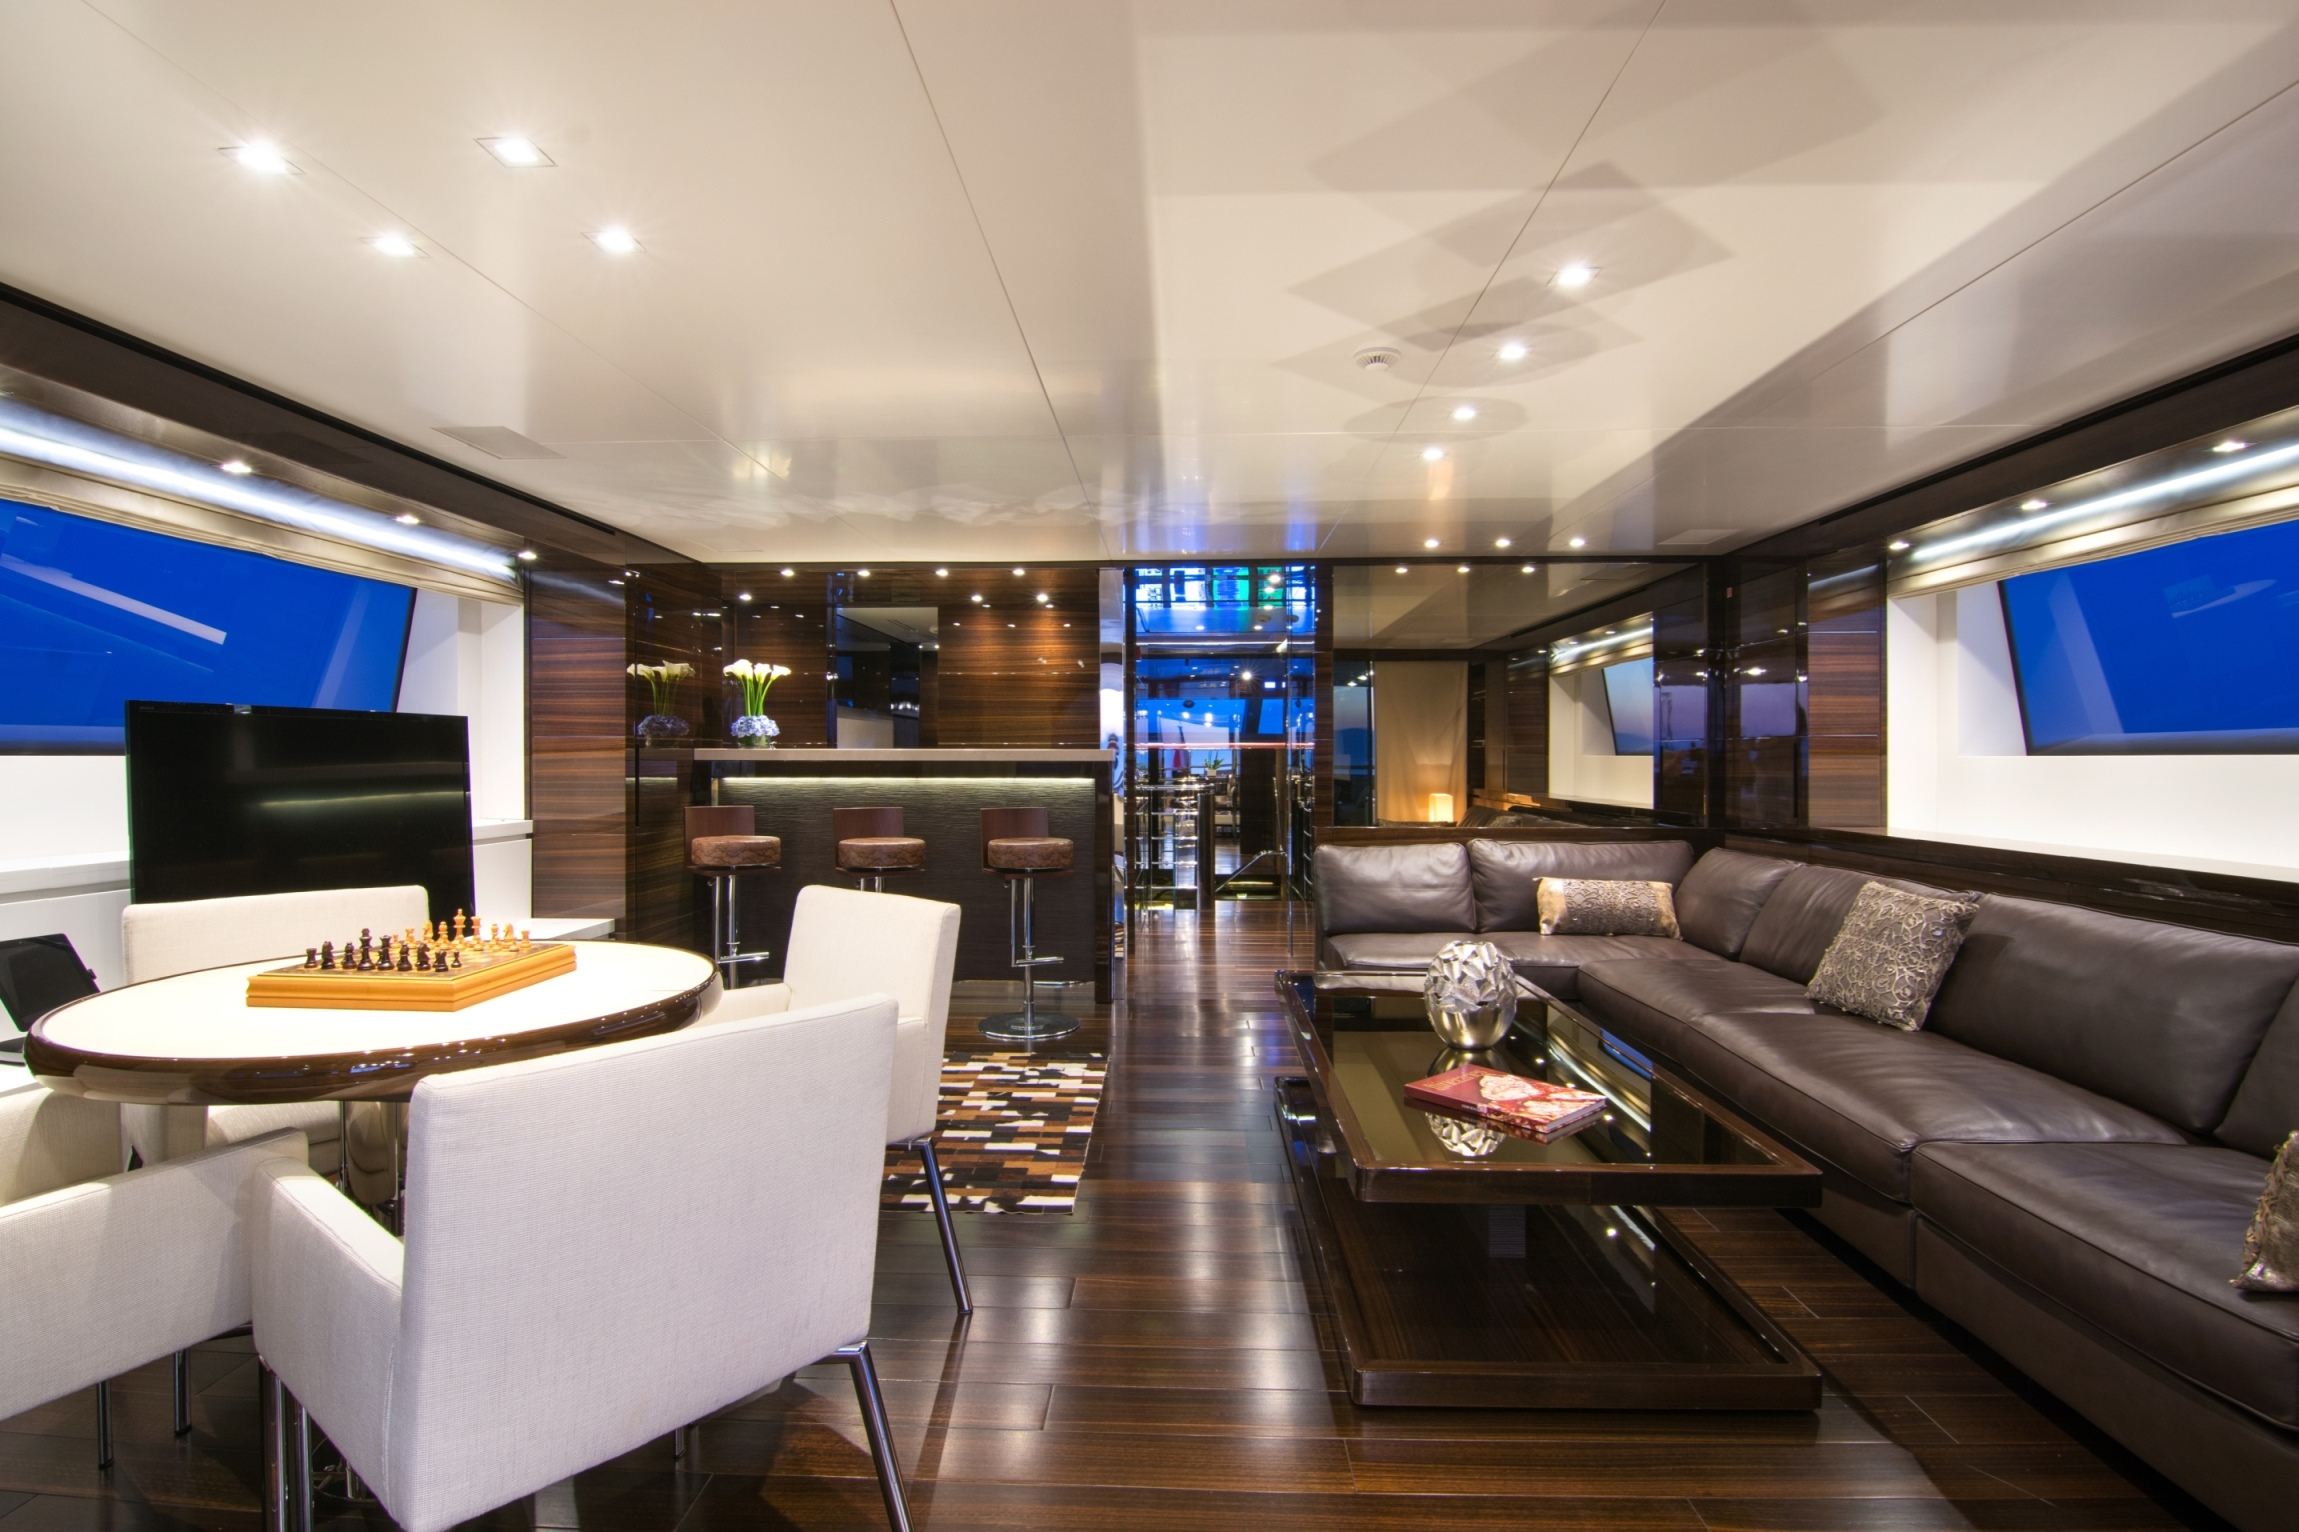 Skylounge With Seating And Wet Bar